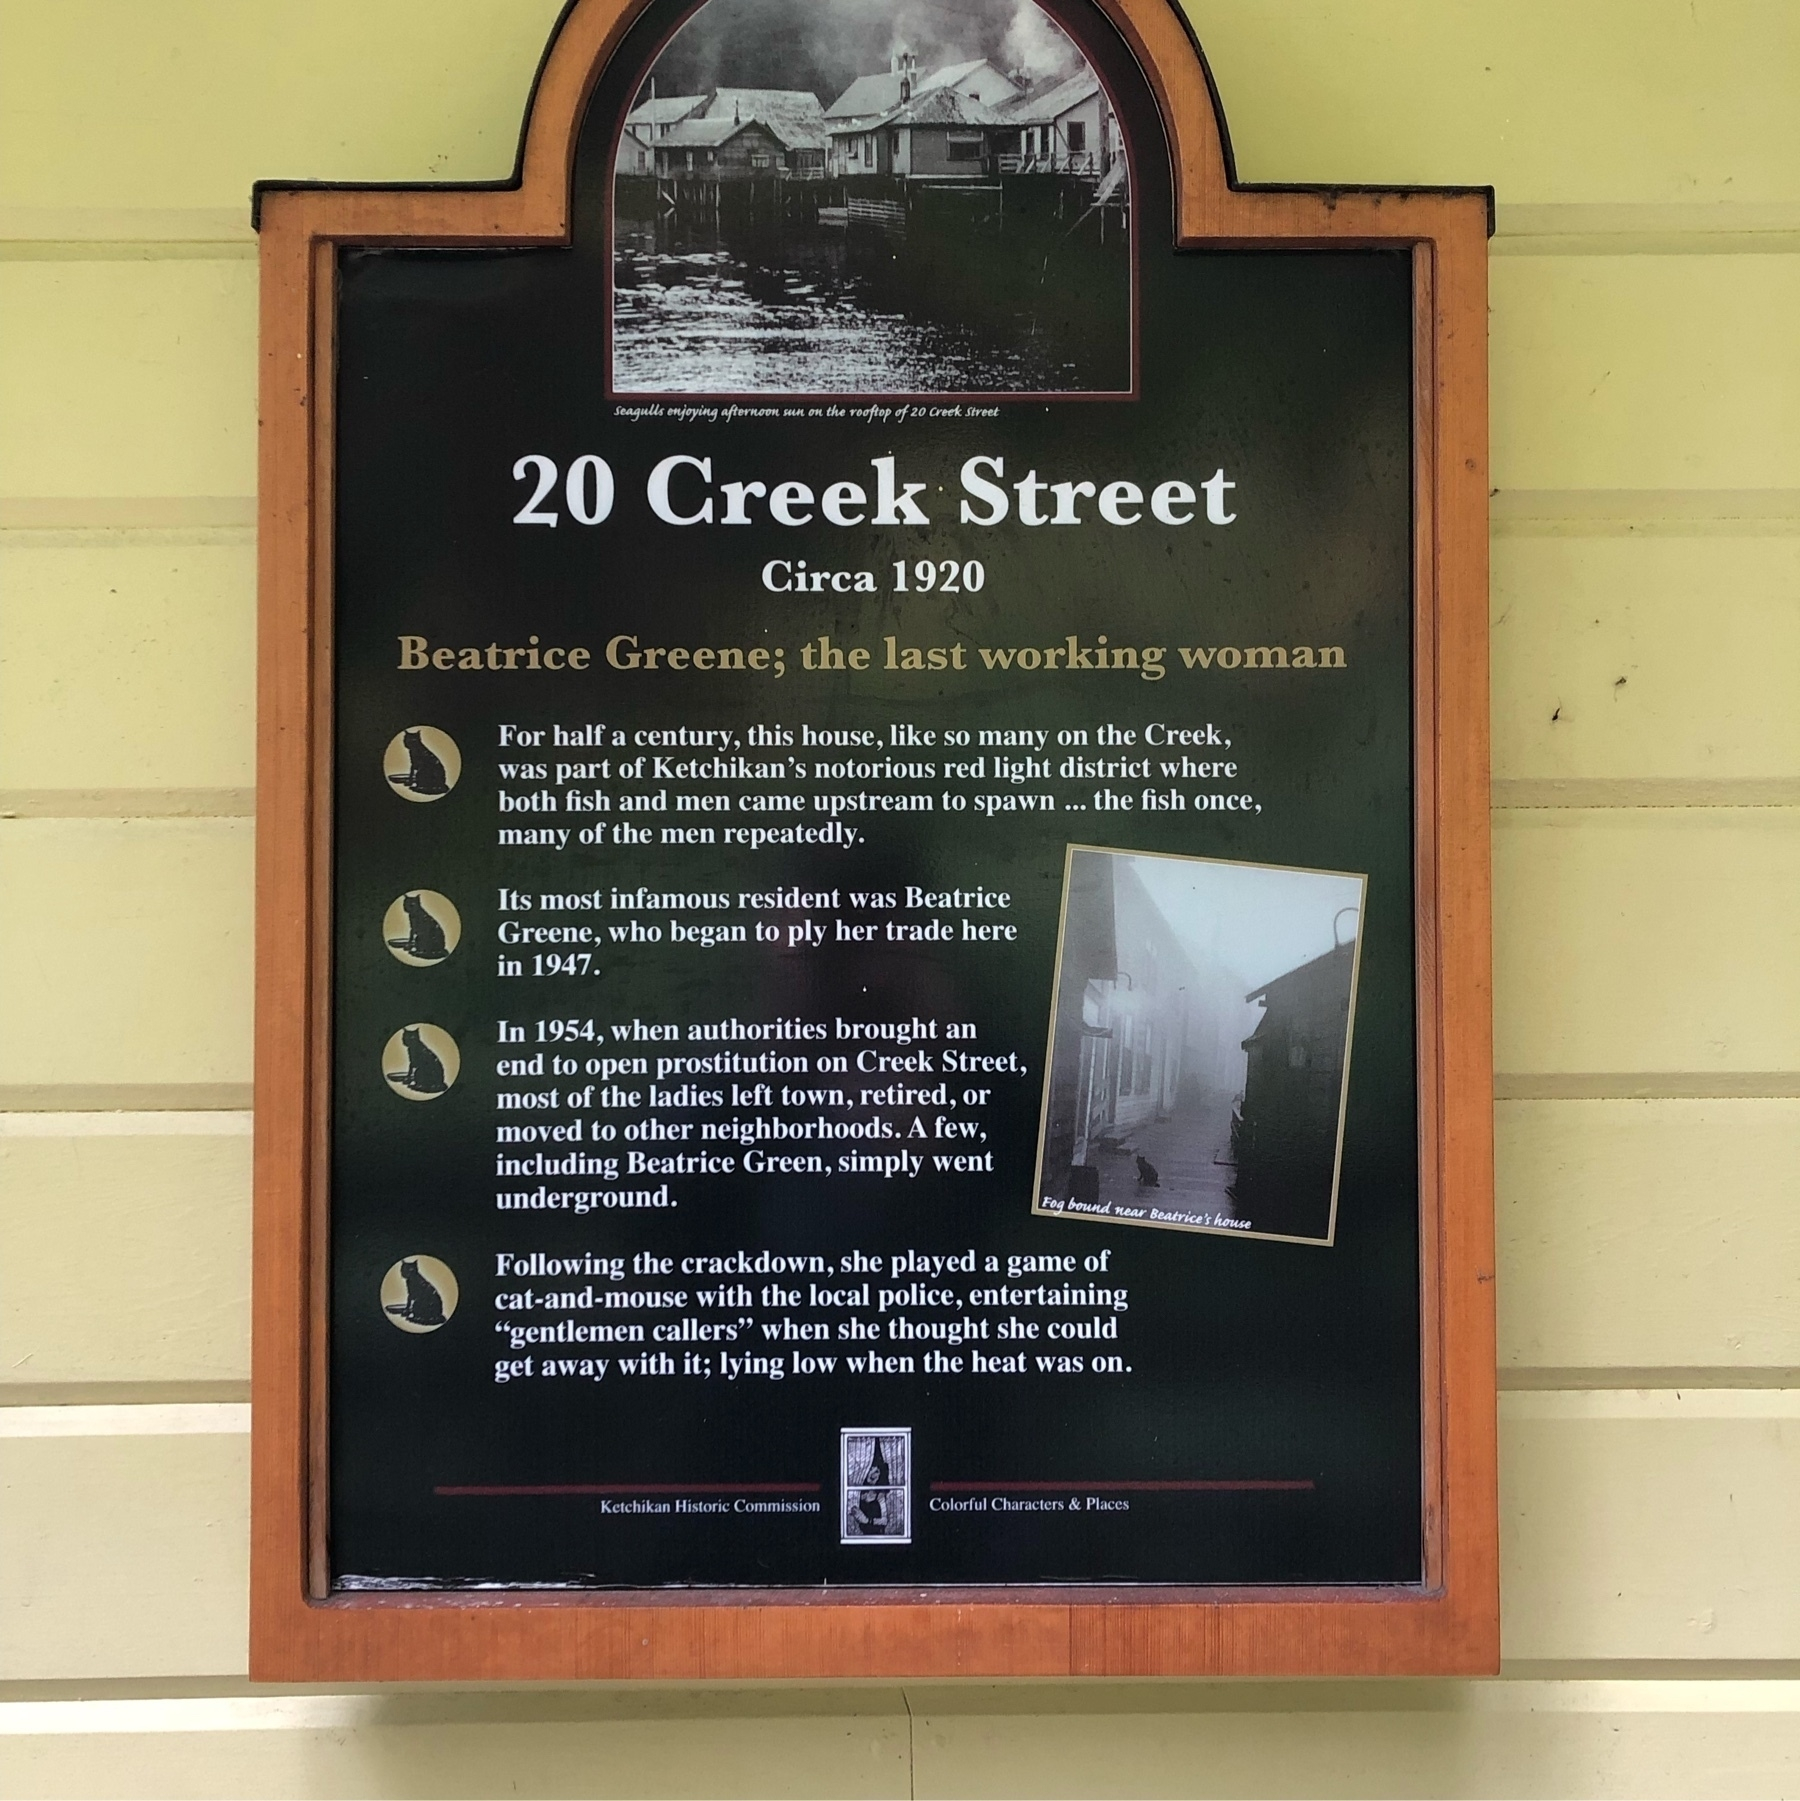 An informational sign tells the story of Beatrice Greene, the last working woman of Ketchikan, Alaska. She was a sex worker in the 1920s who dodged the cops to ply her trade in historic Ketichikan.